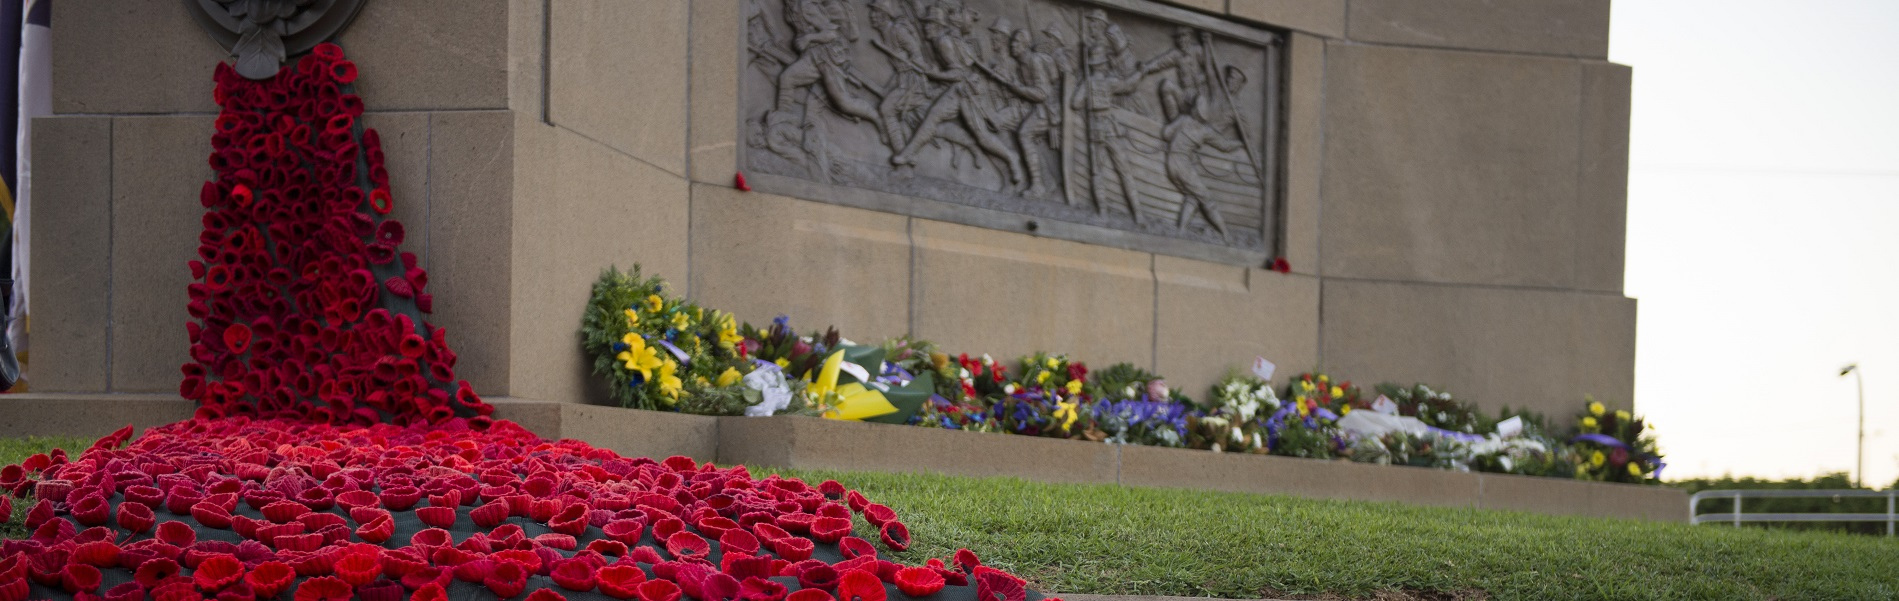 Anzac Day services, marches and road closures in the Dubbo Regional LGA